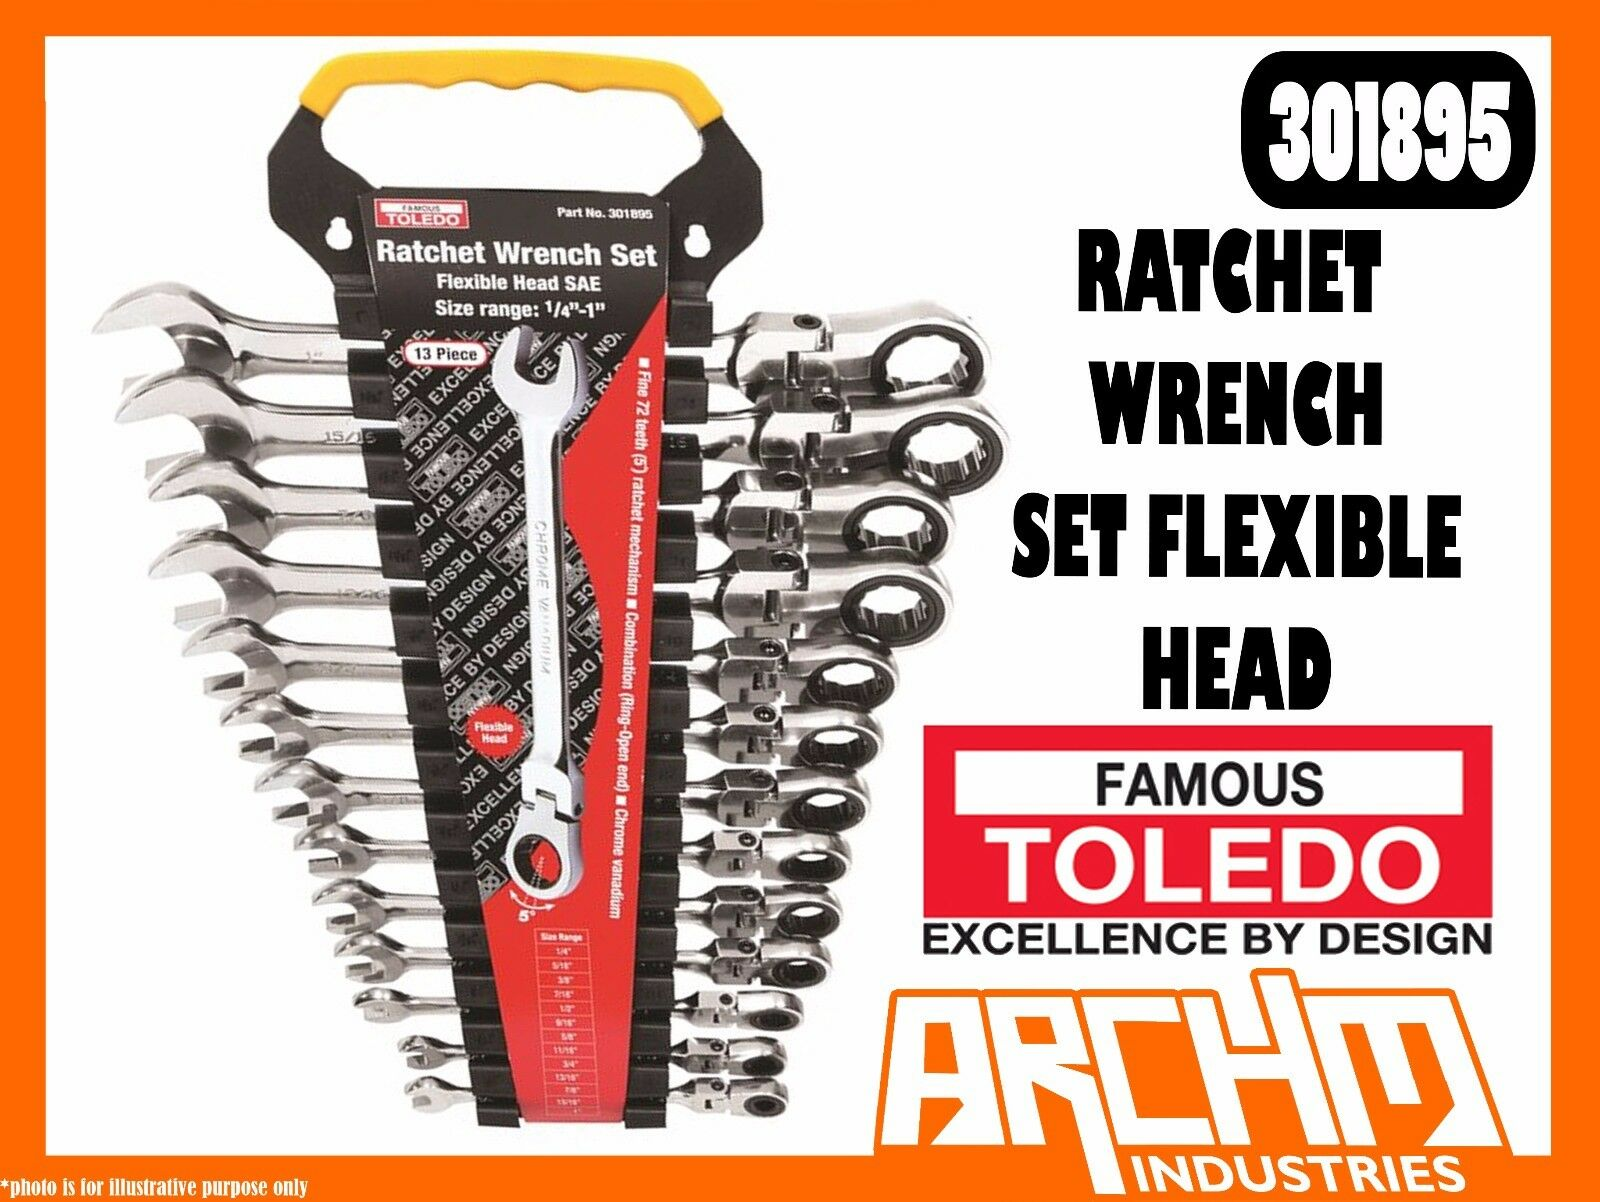 TOLEDO 301895 - RATCHET WRENCH SET FLEXIBLE HEAD - SAE 13 PC 1 4 -1  RING OPEN